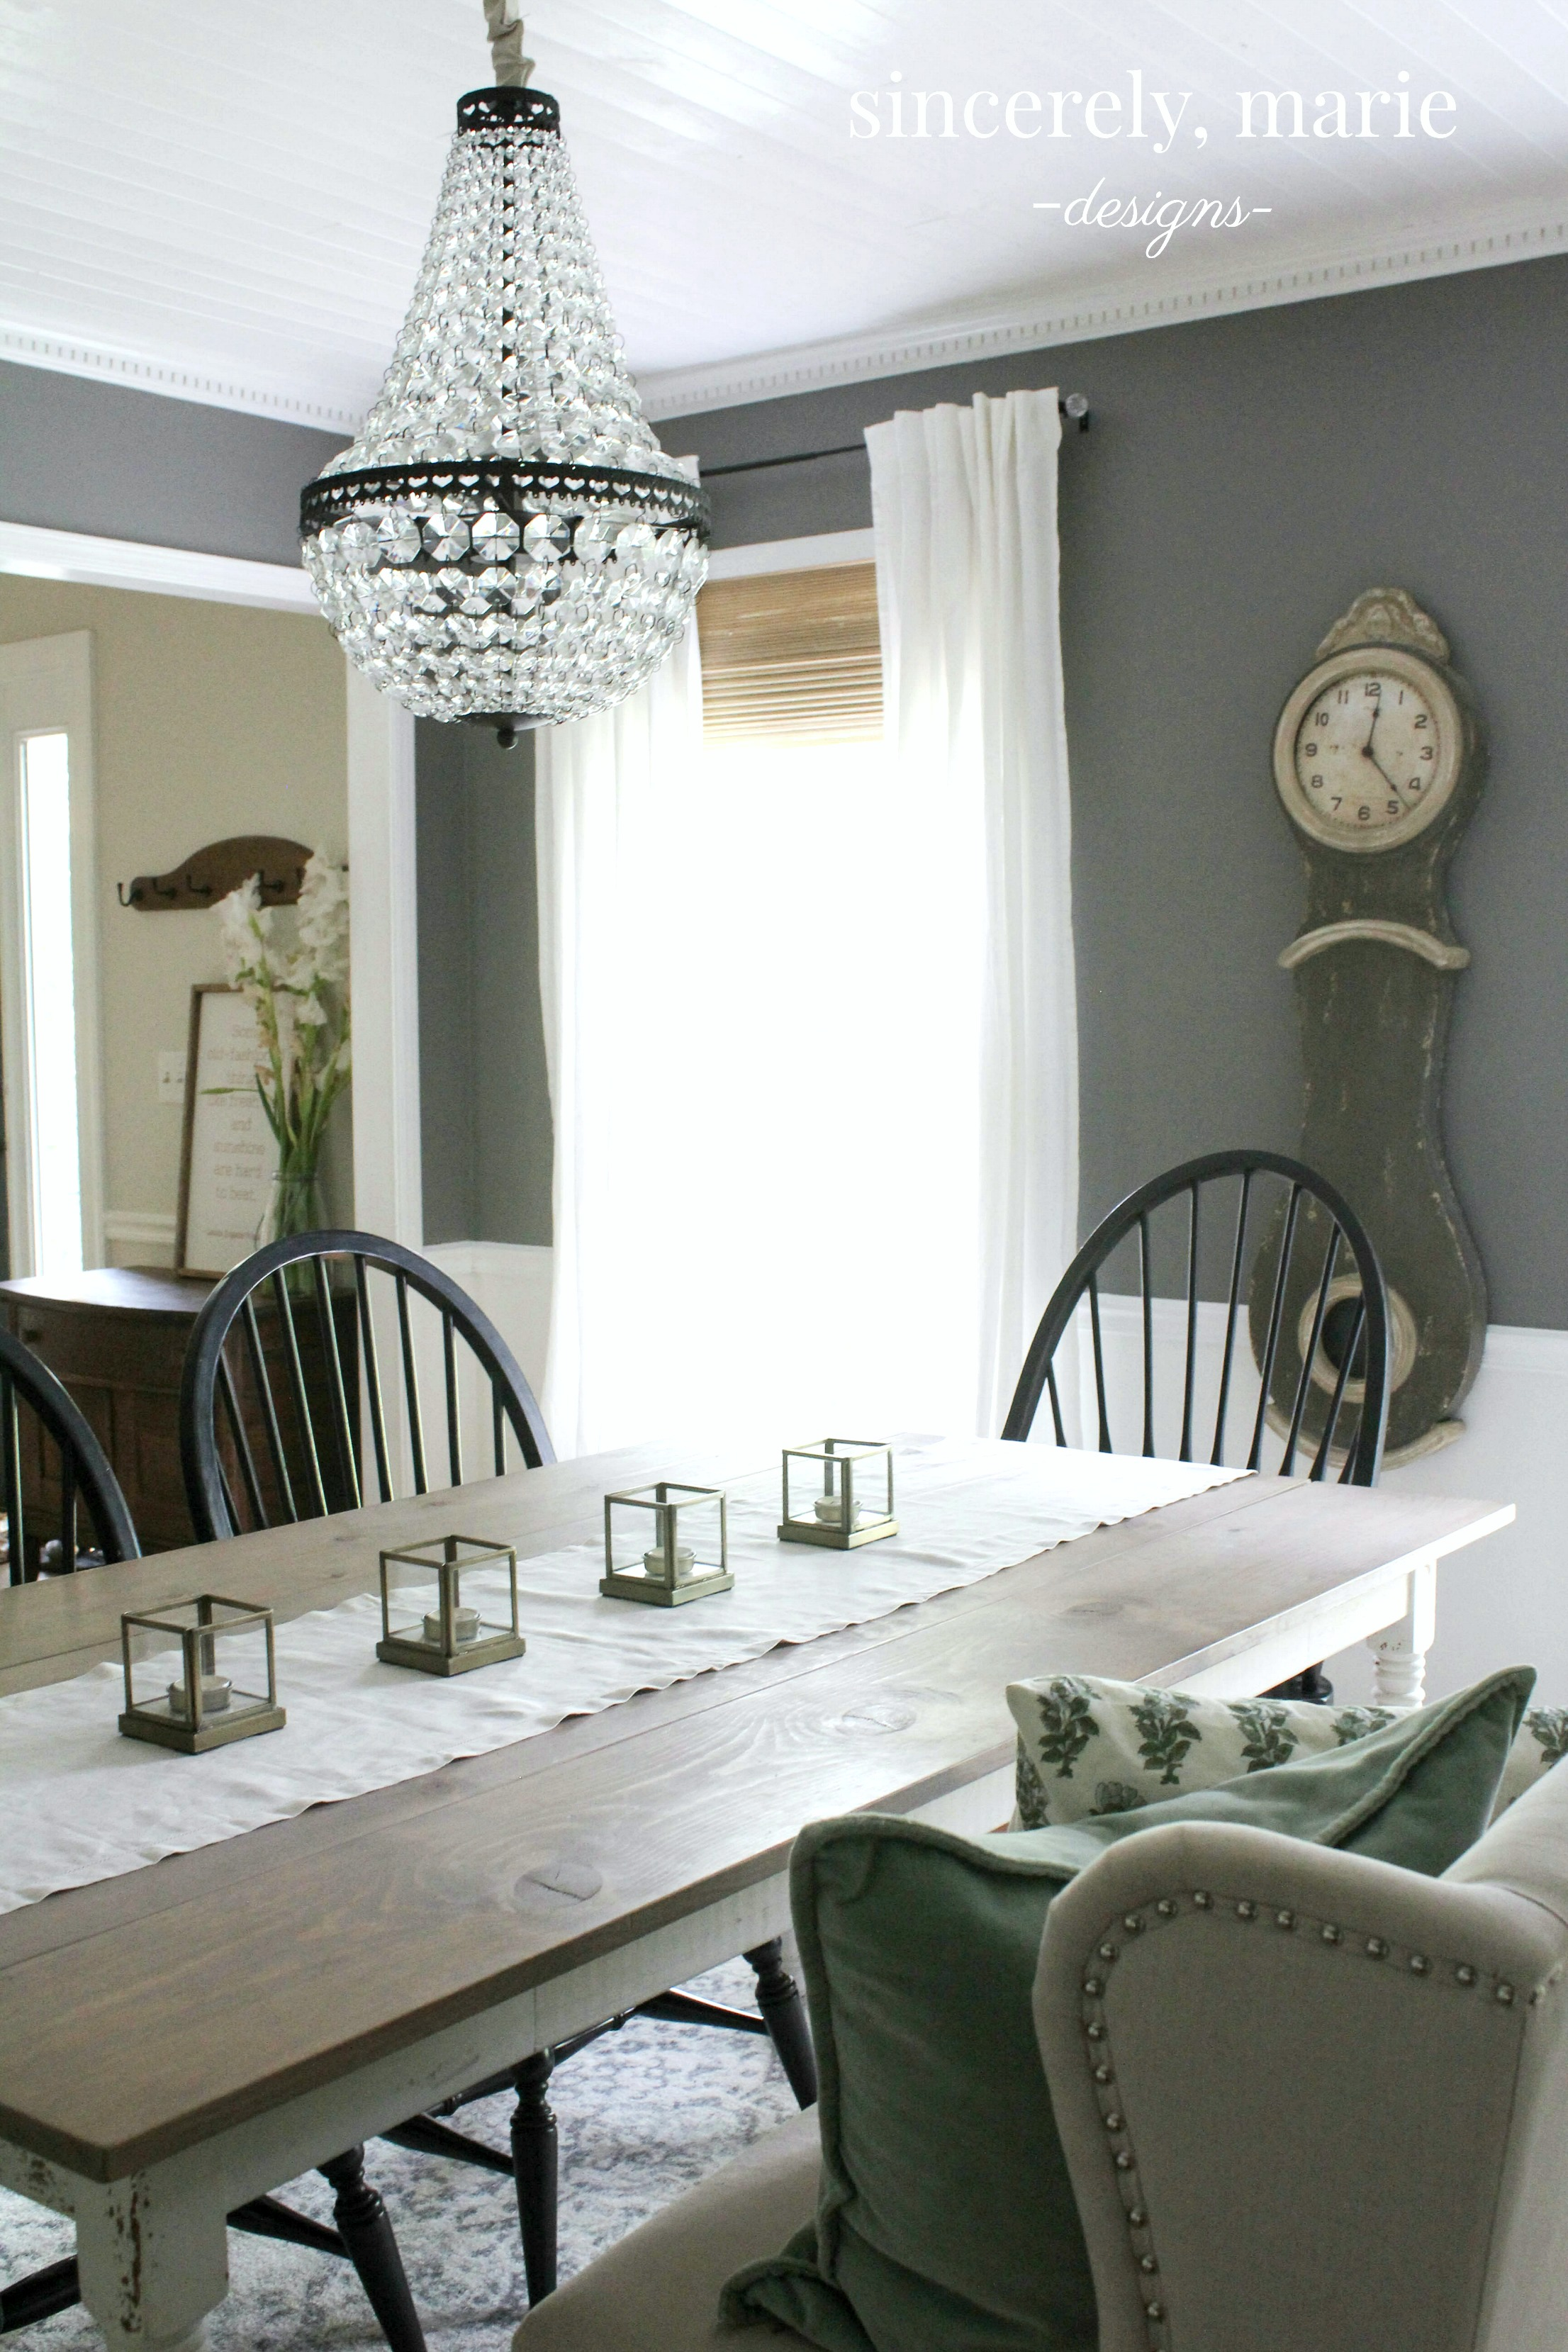 Room Makeovers room makeovers archives - sincerely, marie designs